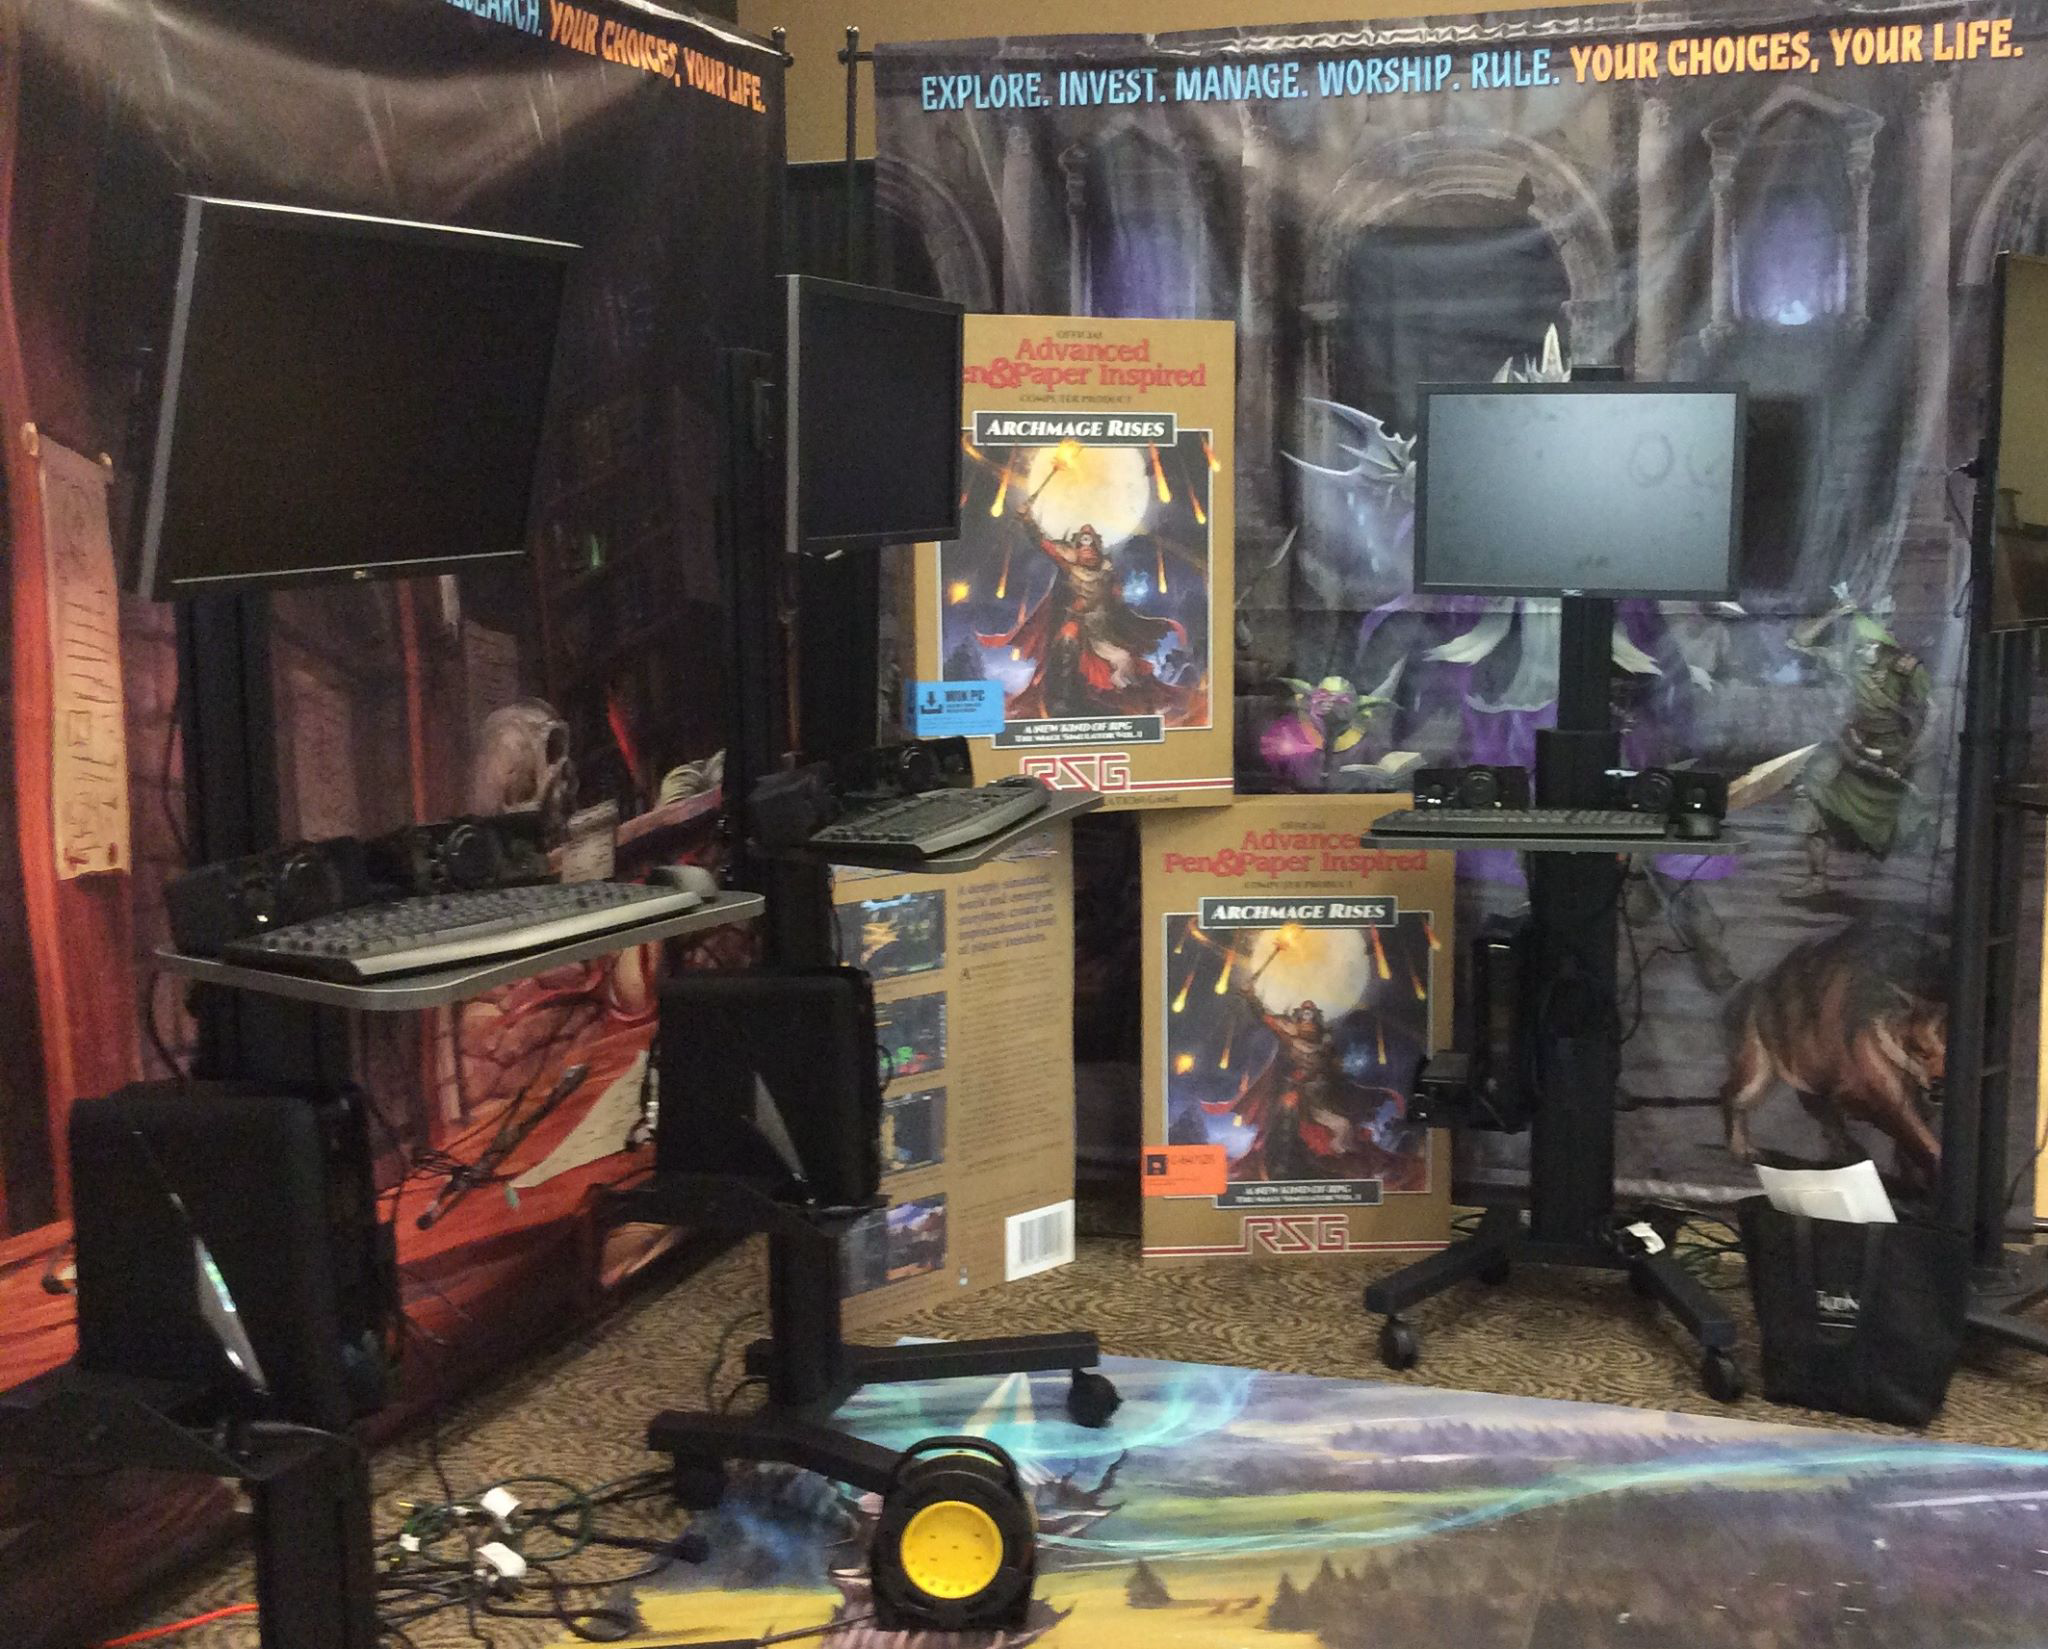 Archmage Rises Booth.jpg